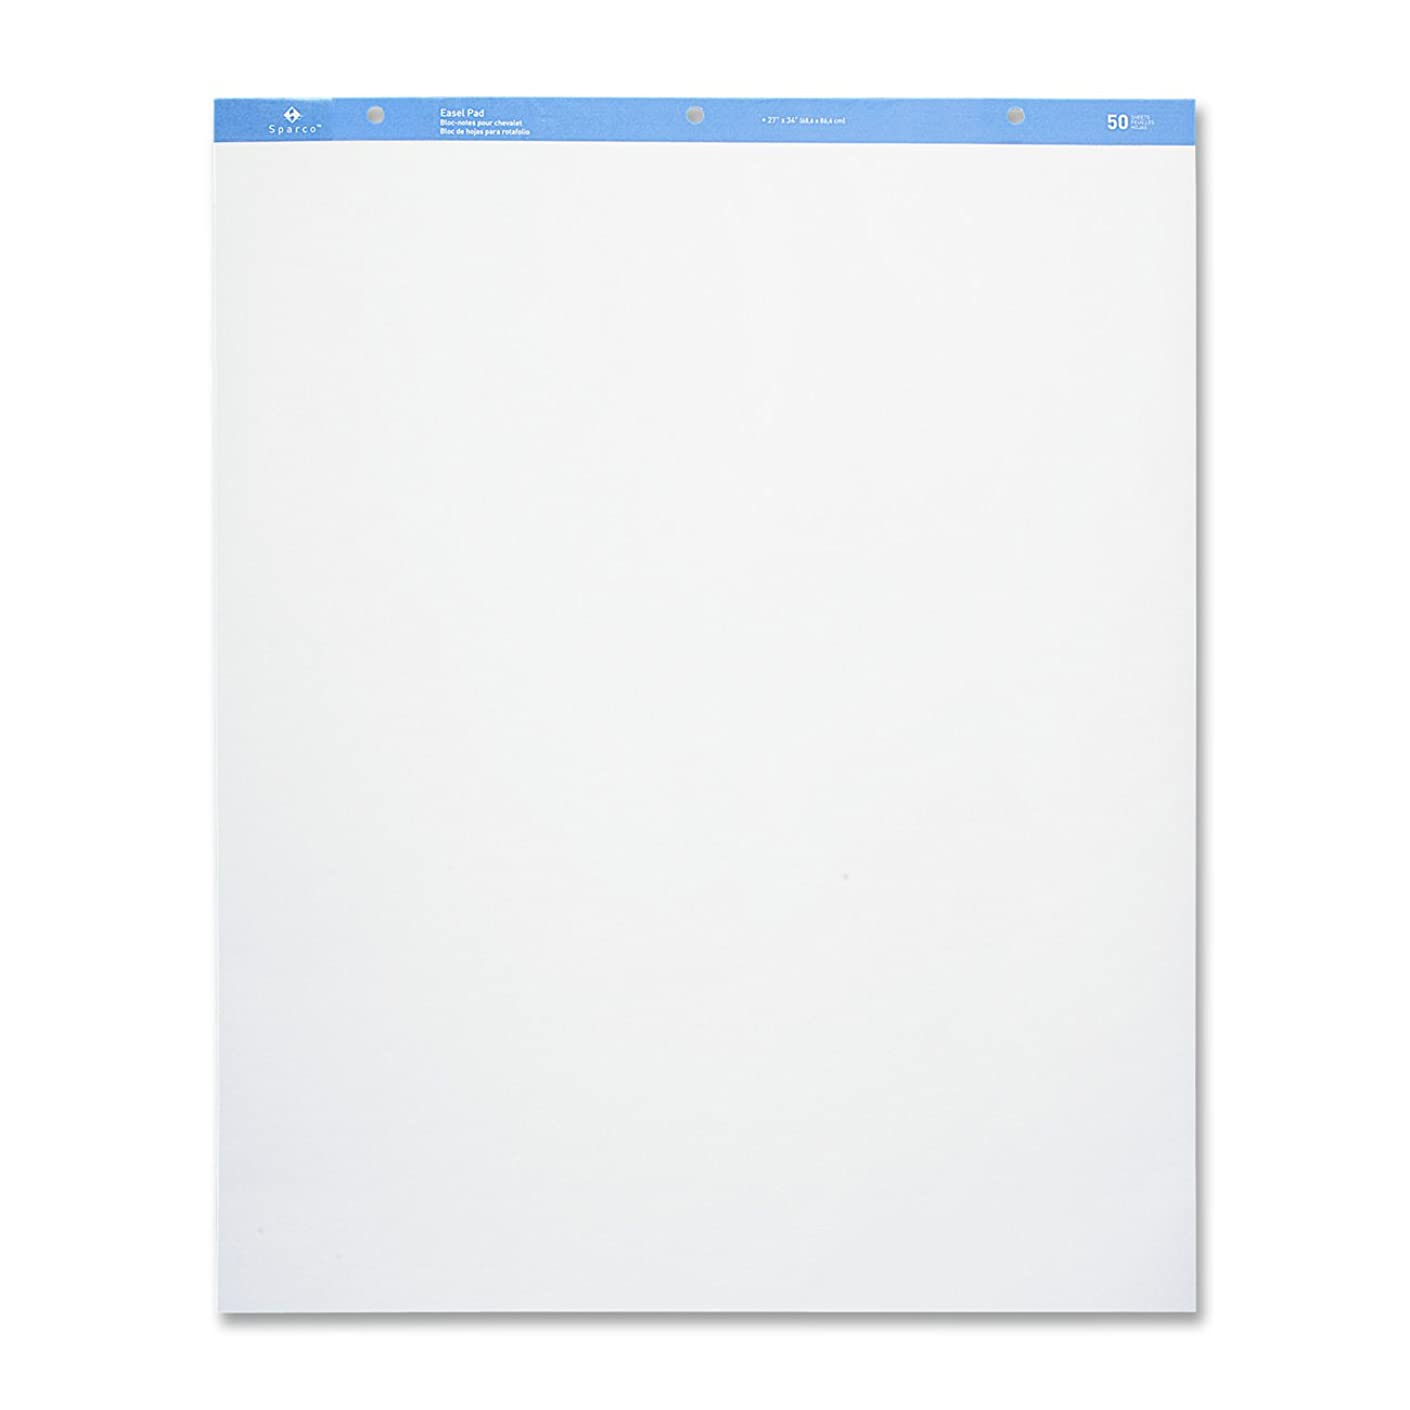 Sparco Standard Easel Pad, Plain, 27 x 34 Inches, 50 Sheets, 2 Count, White (SPR52734)